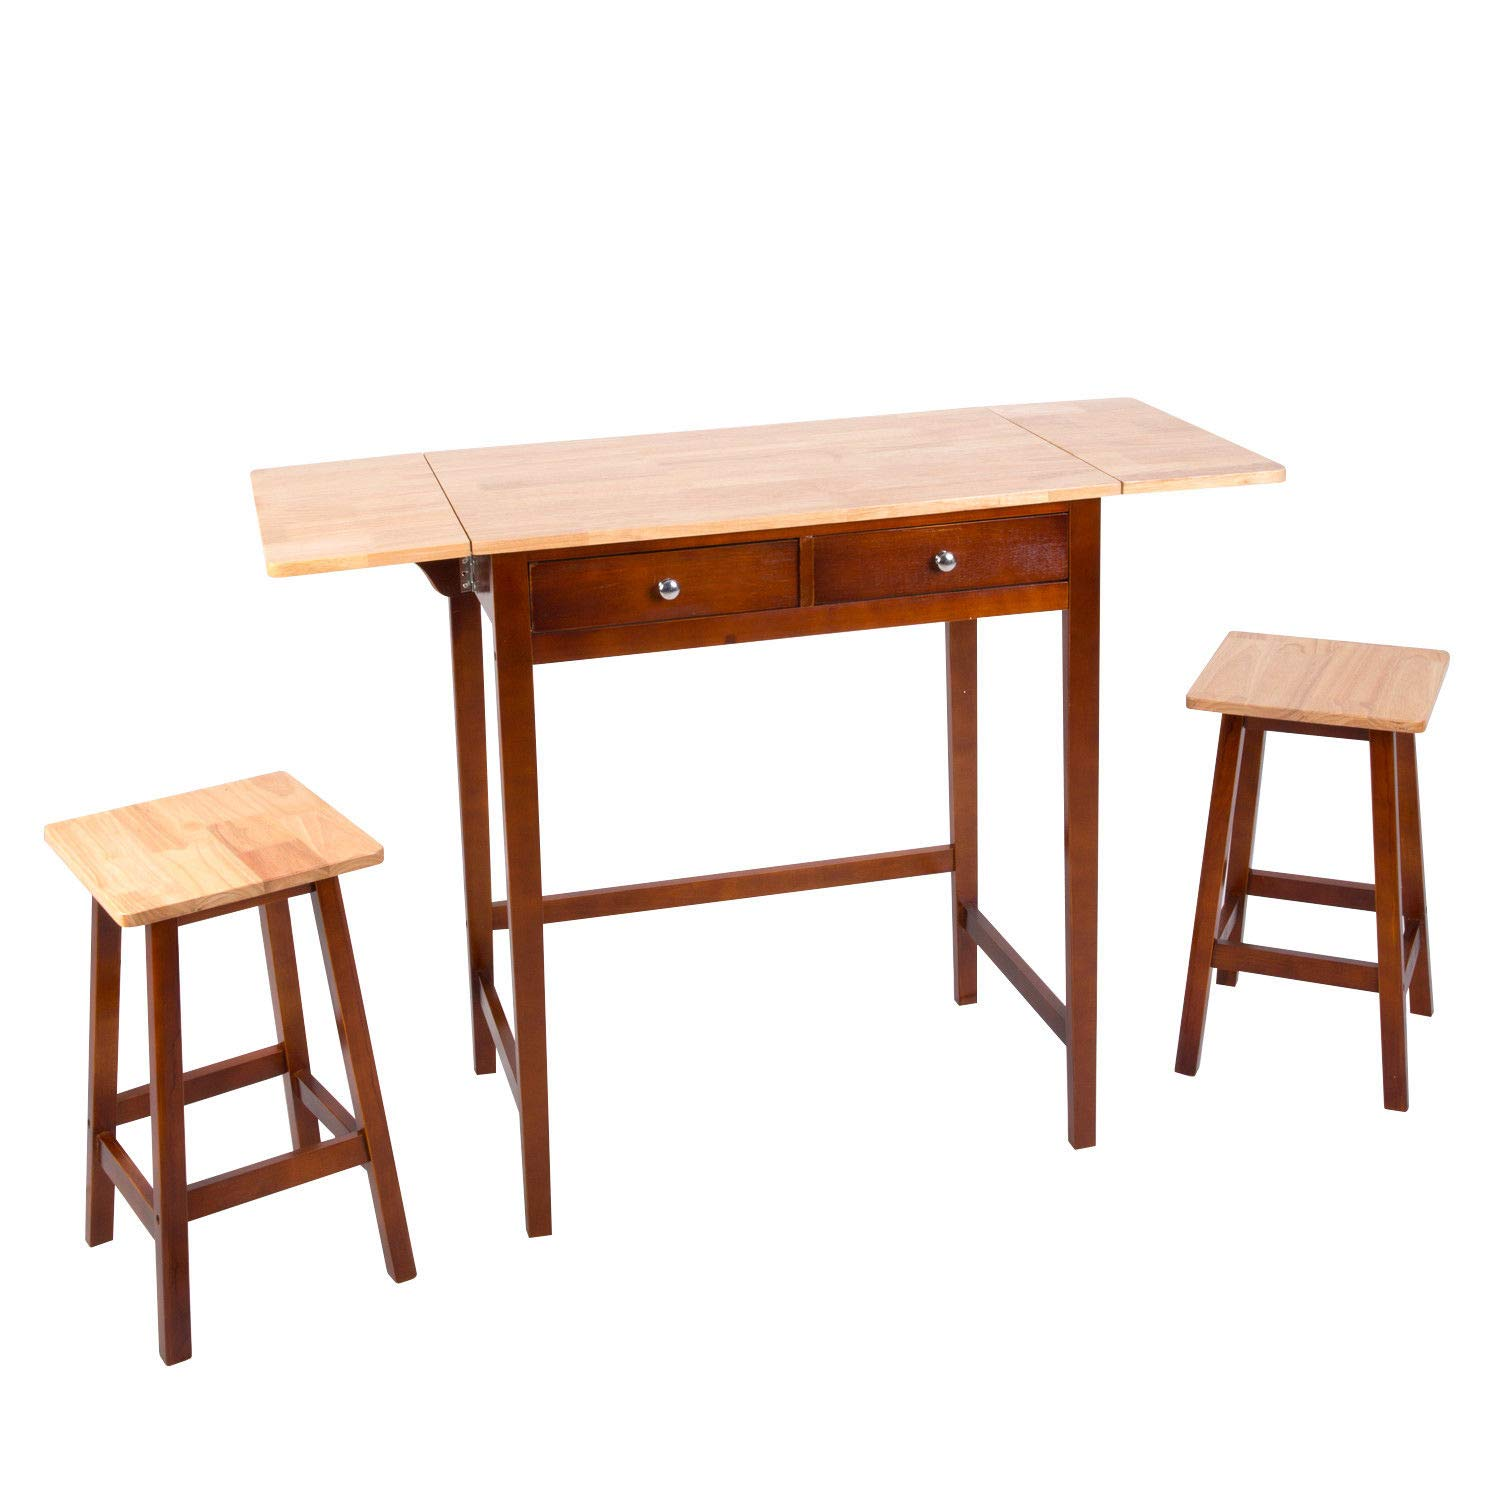 Amazon com anya nana simple dining set 3 pcs wood breakfast bistro double drop leaf table kitchen stool seating dinner guests table chair sets